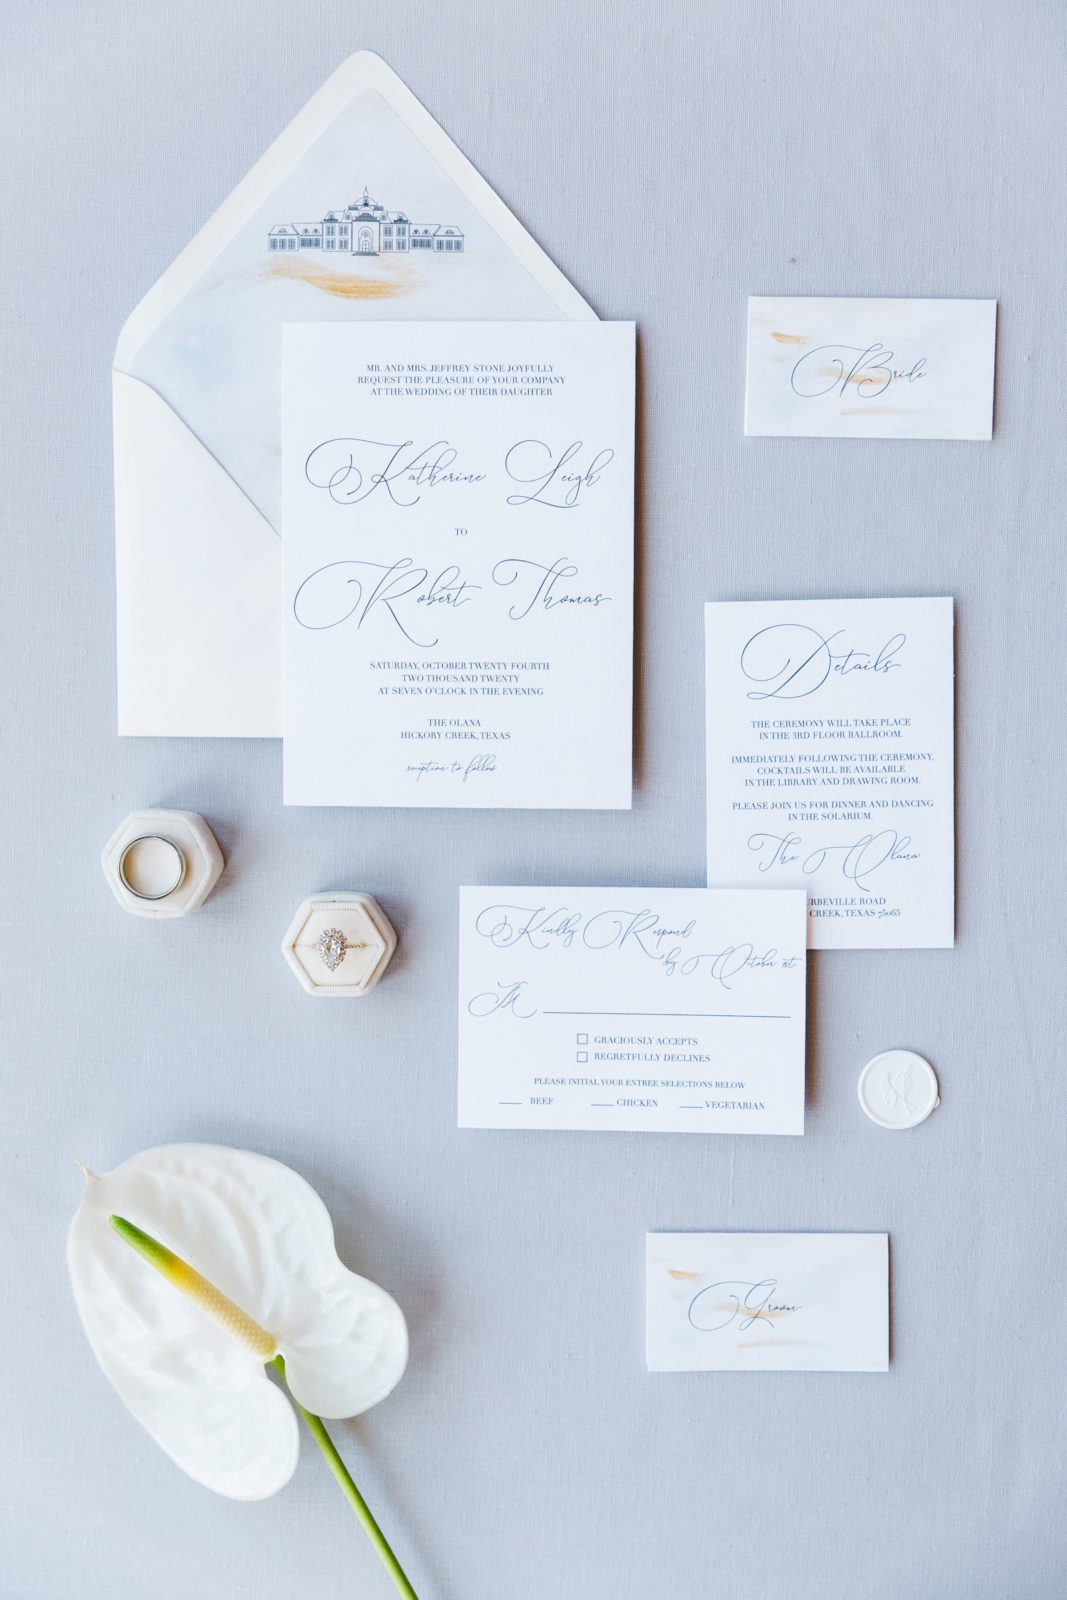 Simple wedding stationery design for elegant wedding inspiration at The Olana The Olana wedding inspiration on Alexa Kay Events